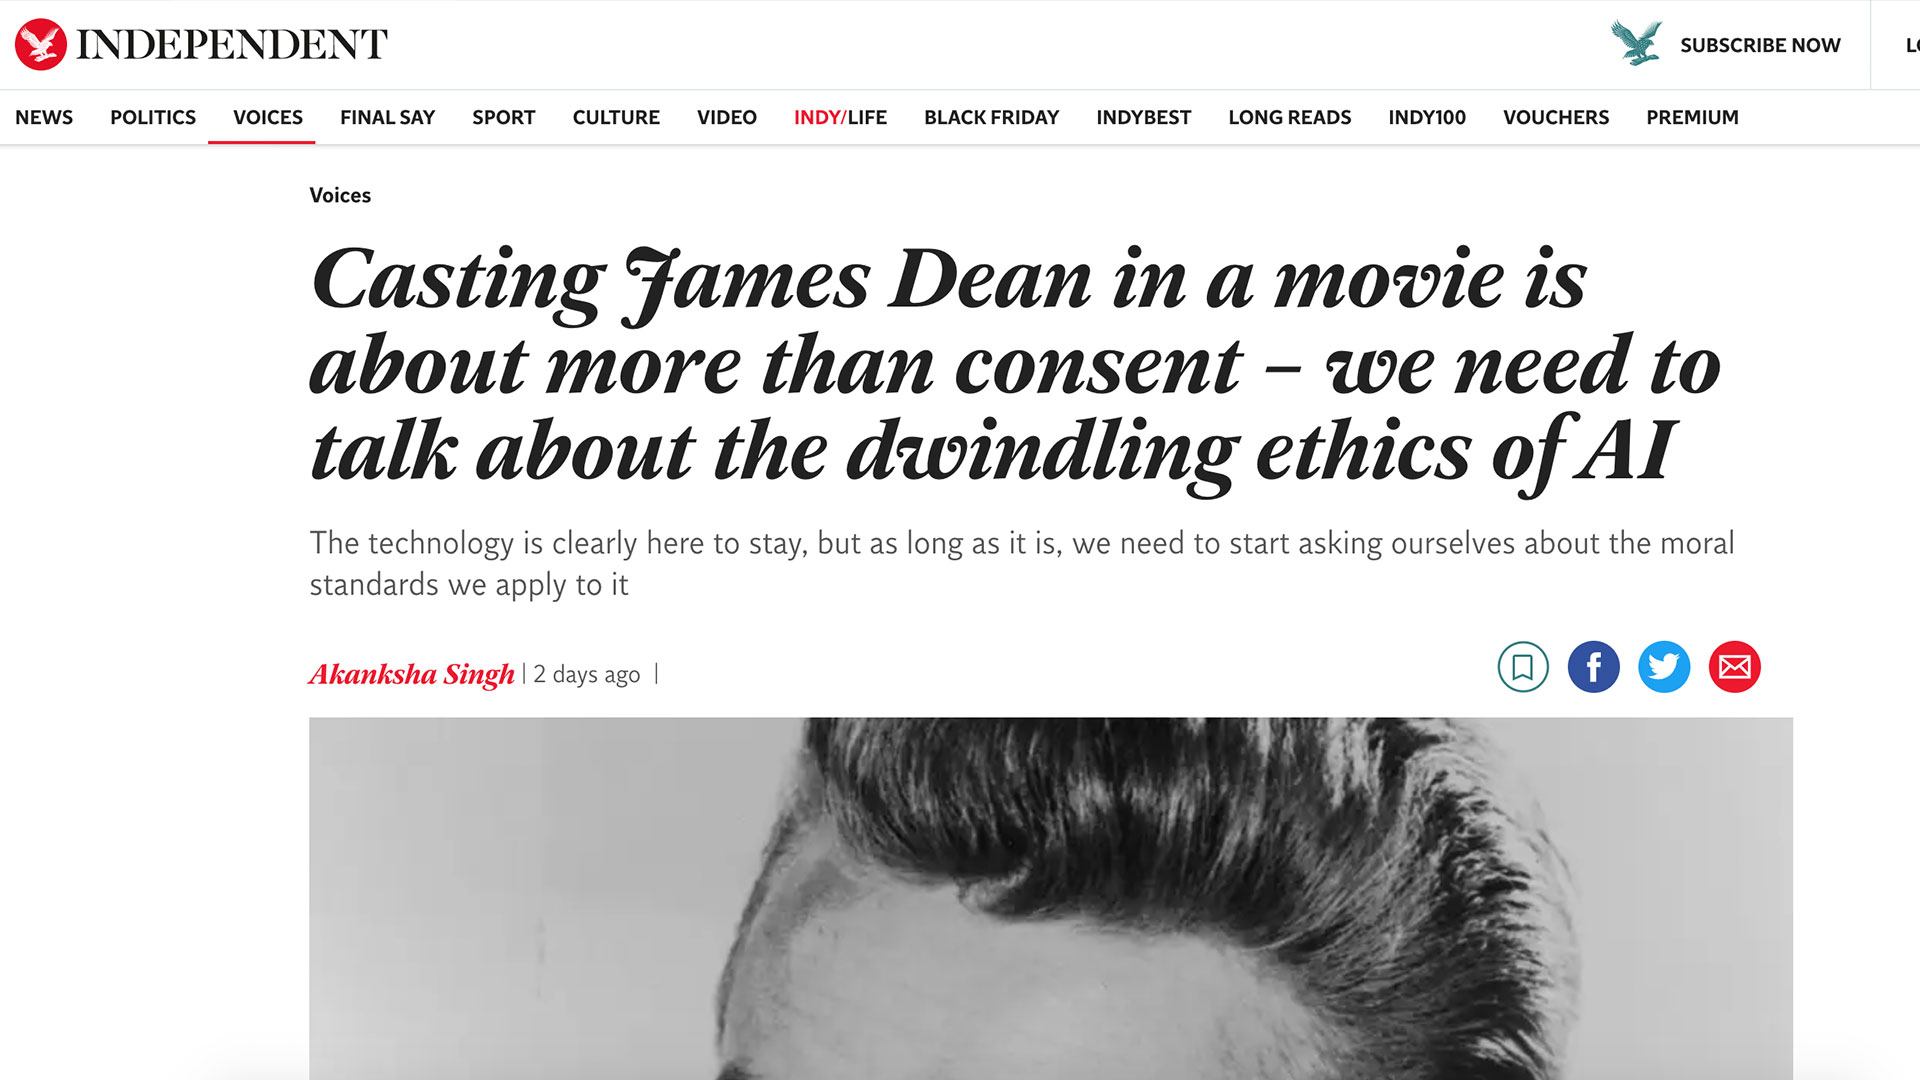 Fairness Rocks News Casting James Dean in a movie is about more than consent – we need to talk about the dwindling ethics of AI